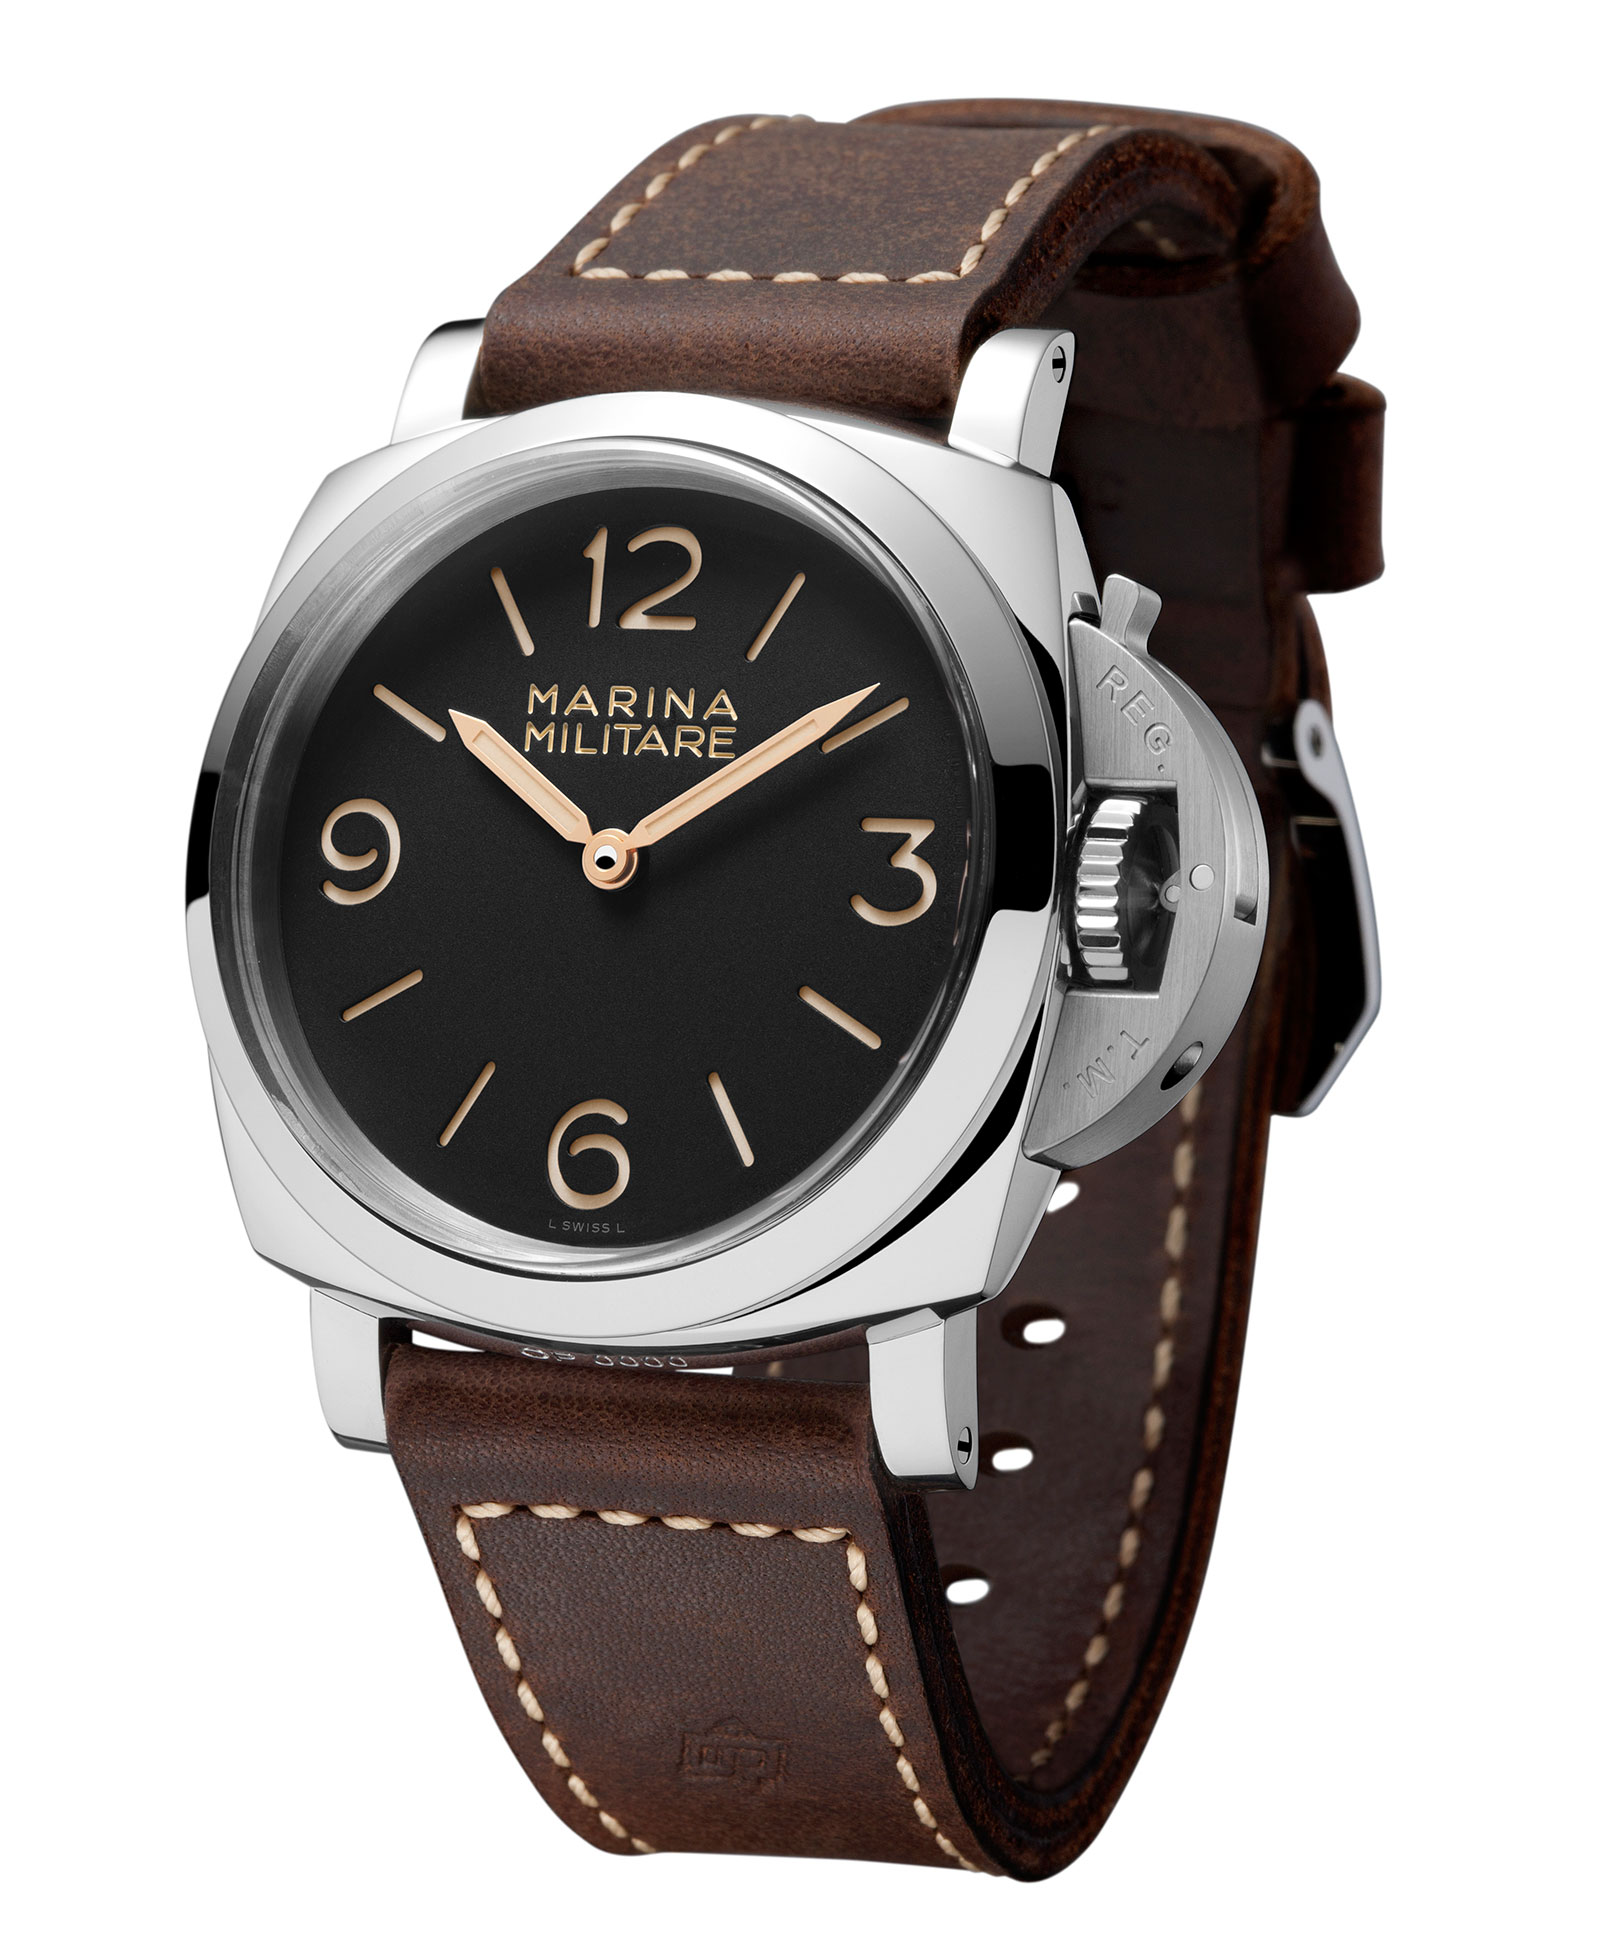 Panerai Luminor 1950 3 Days PAM673 1